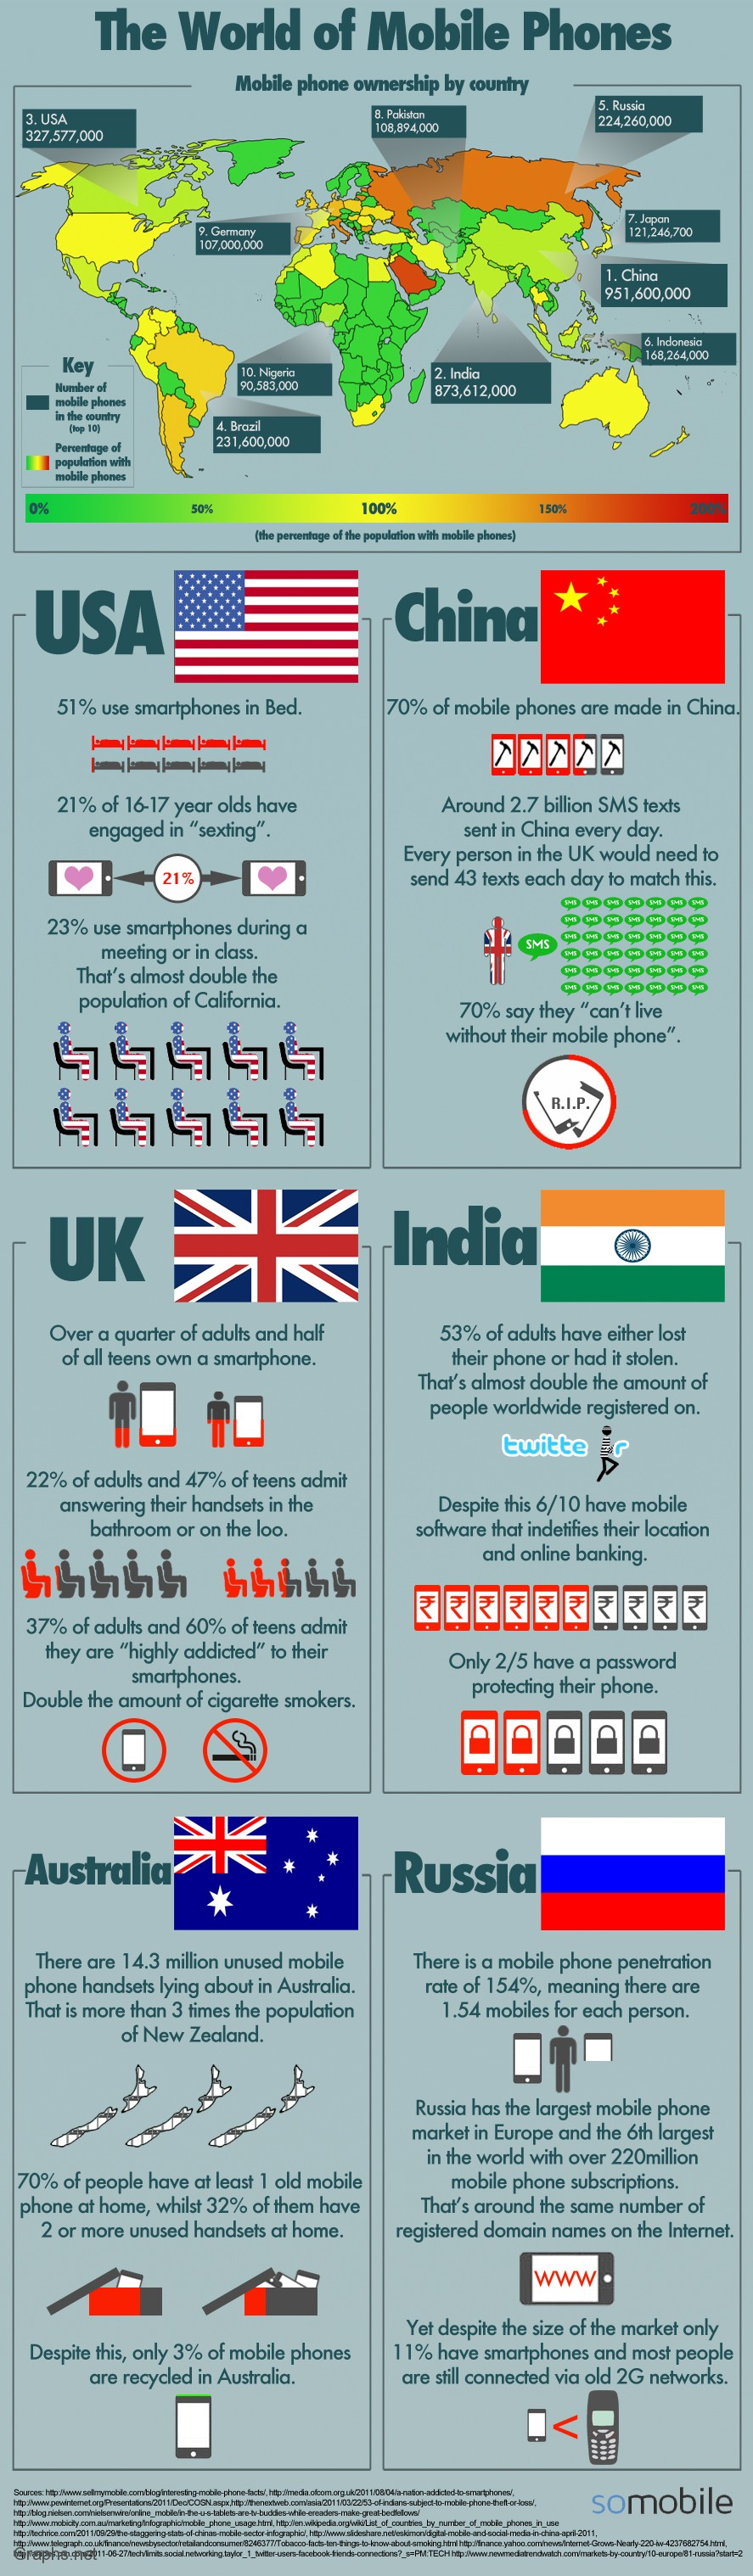 The world of mobile phone